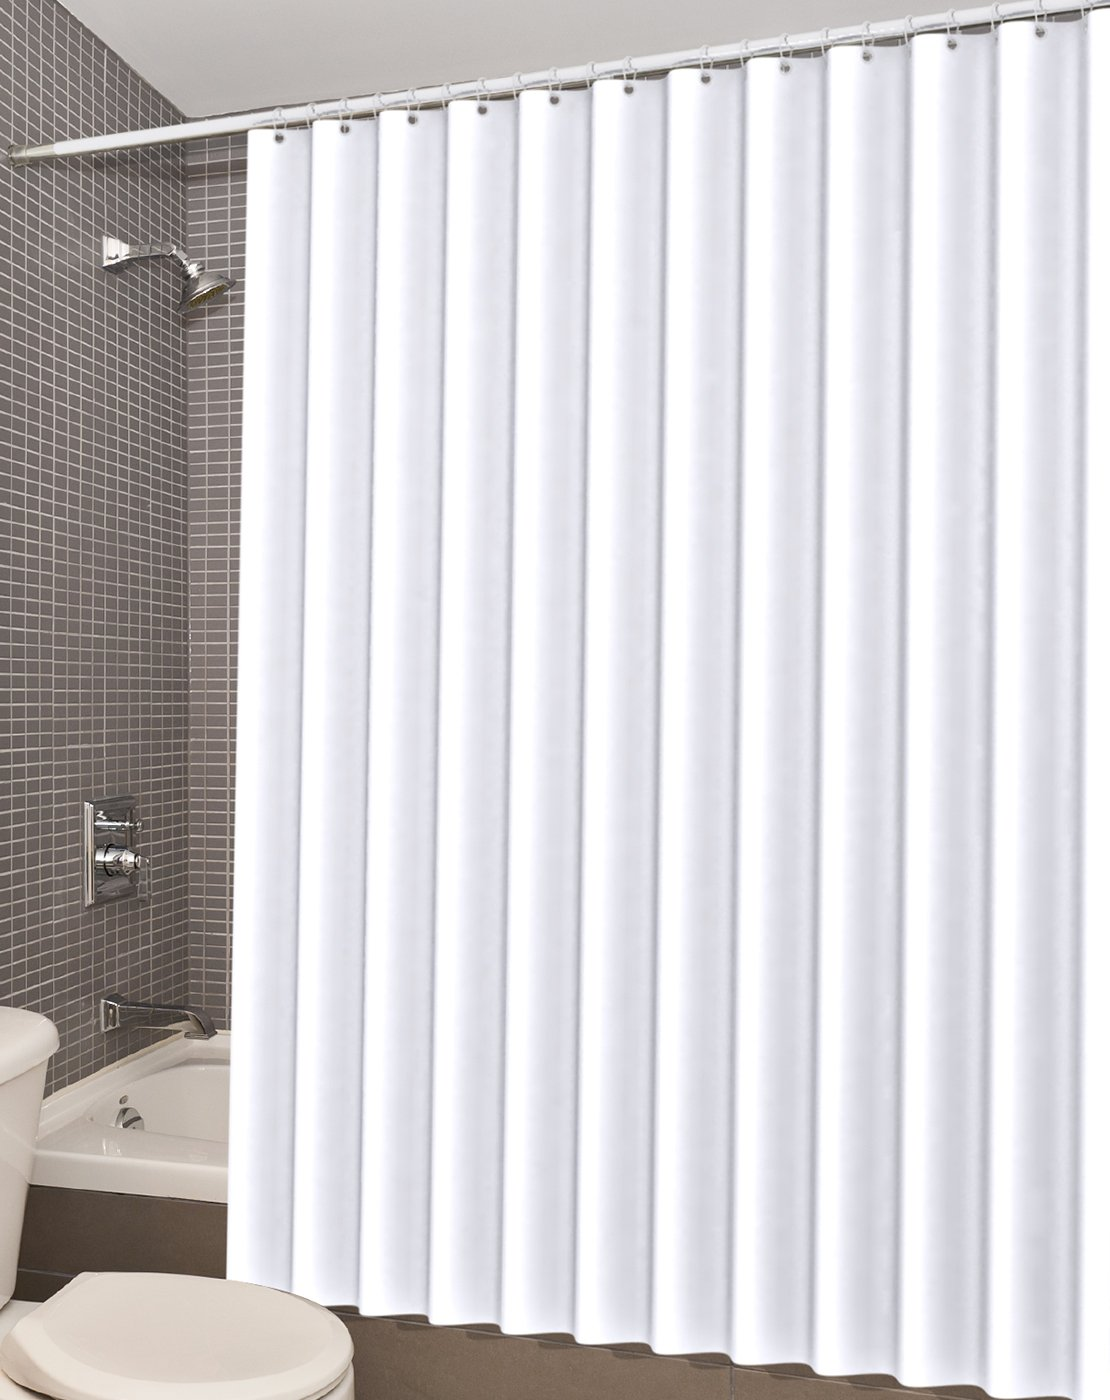 White Shower Curtain Liner Peva Water Repellent 72x72